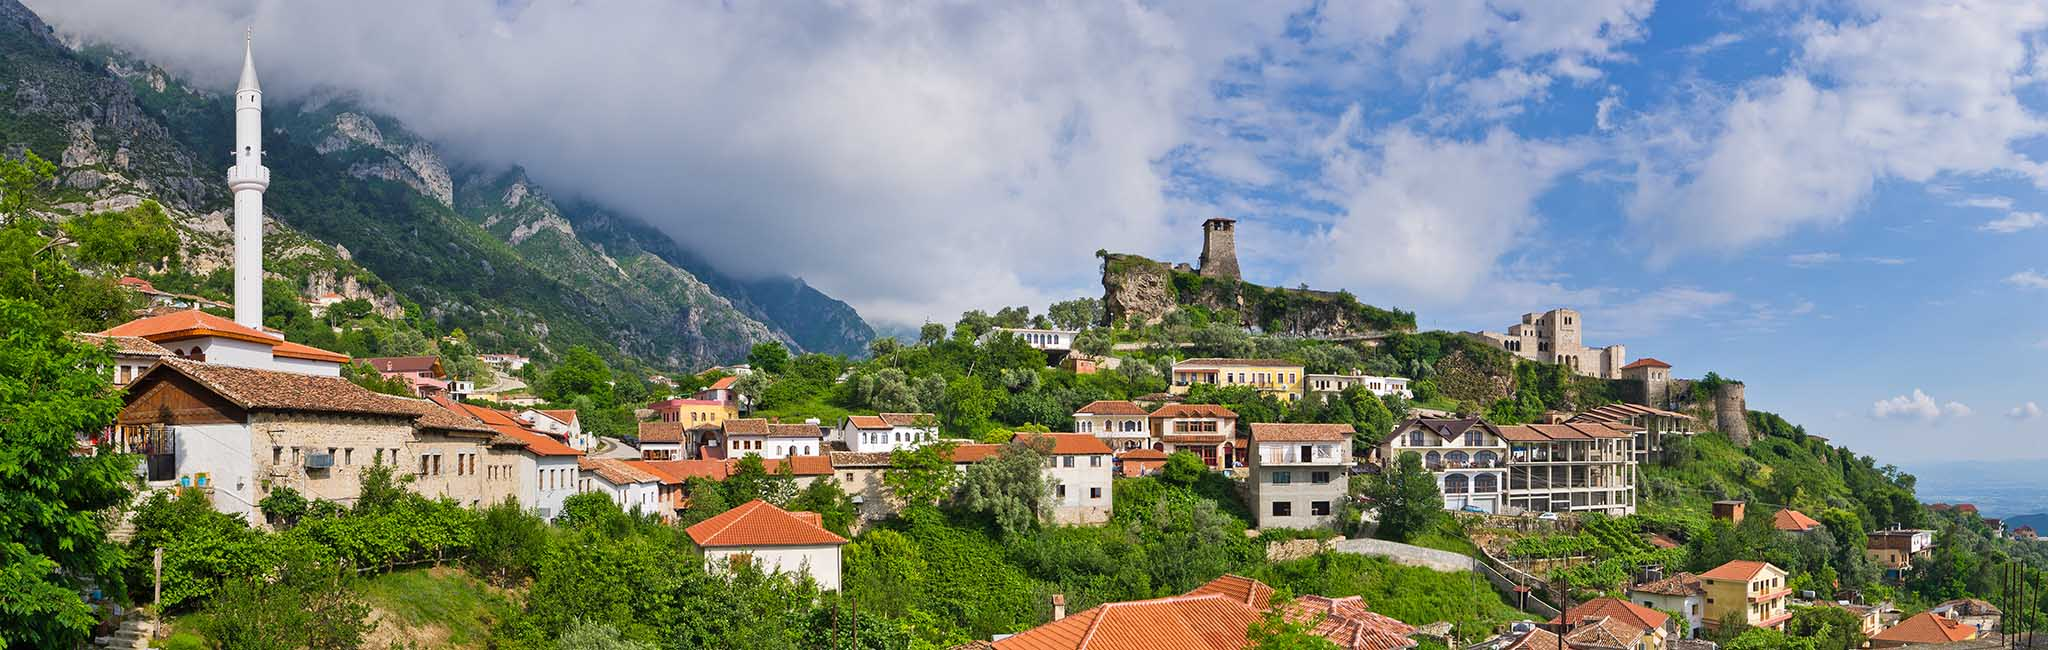 Albania Tour - Kruja Castle in Tirana